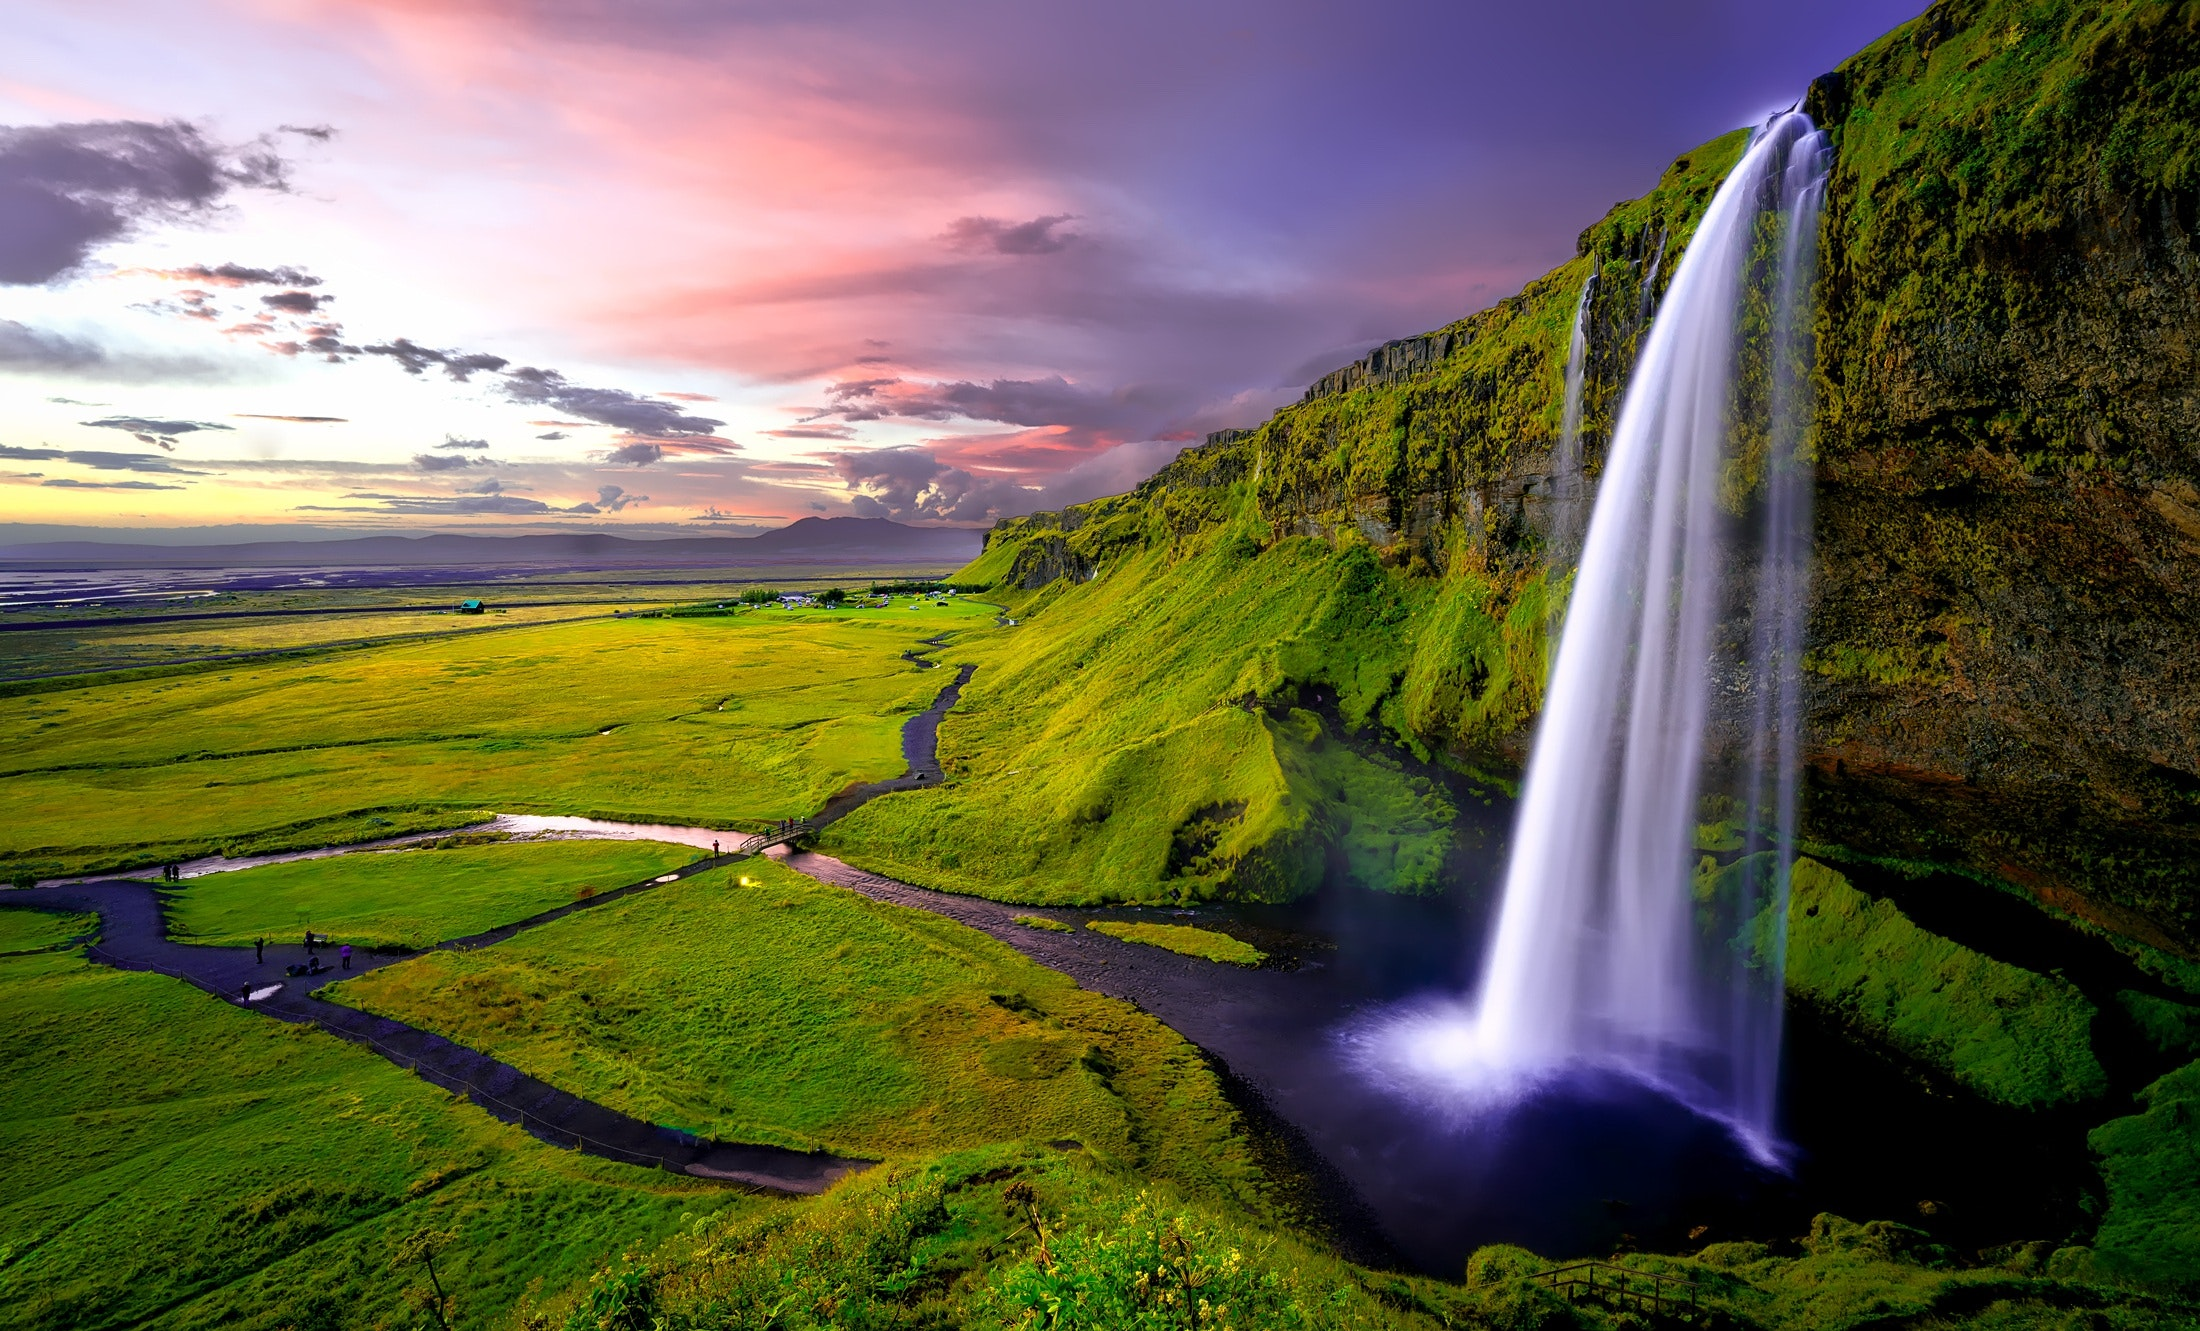 Delightful Time Lapse Photography Of Waterfalls During Sunset